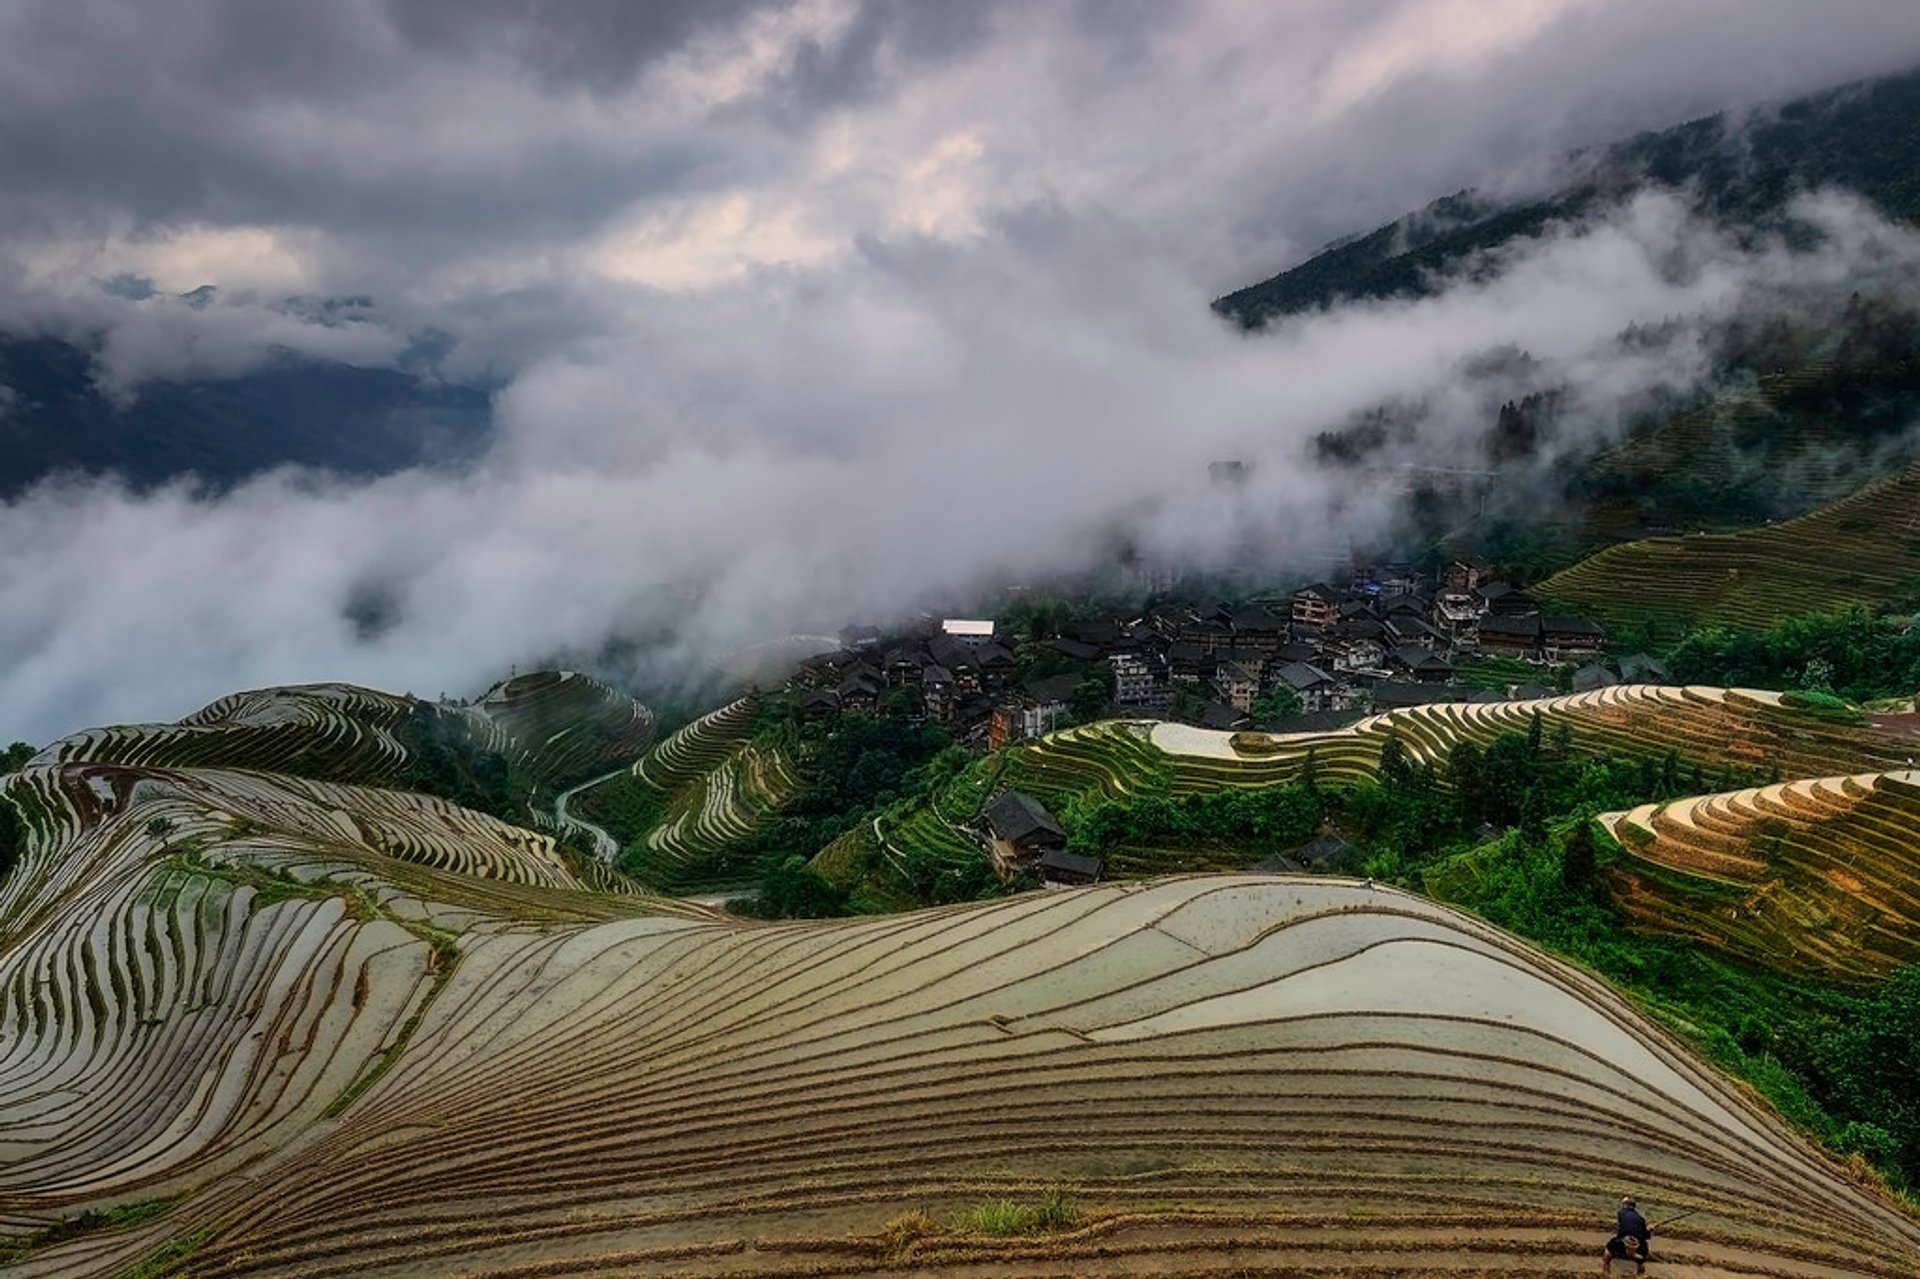 Longsheng (Longji) Rice Terraces in China - Best Season 2019